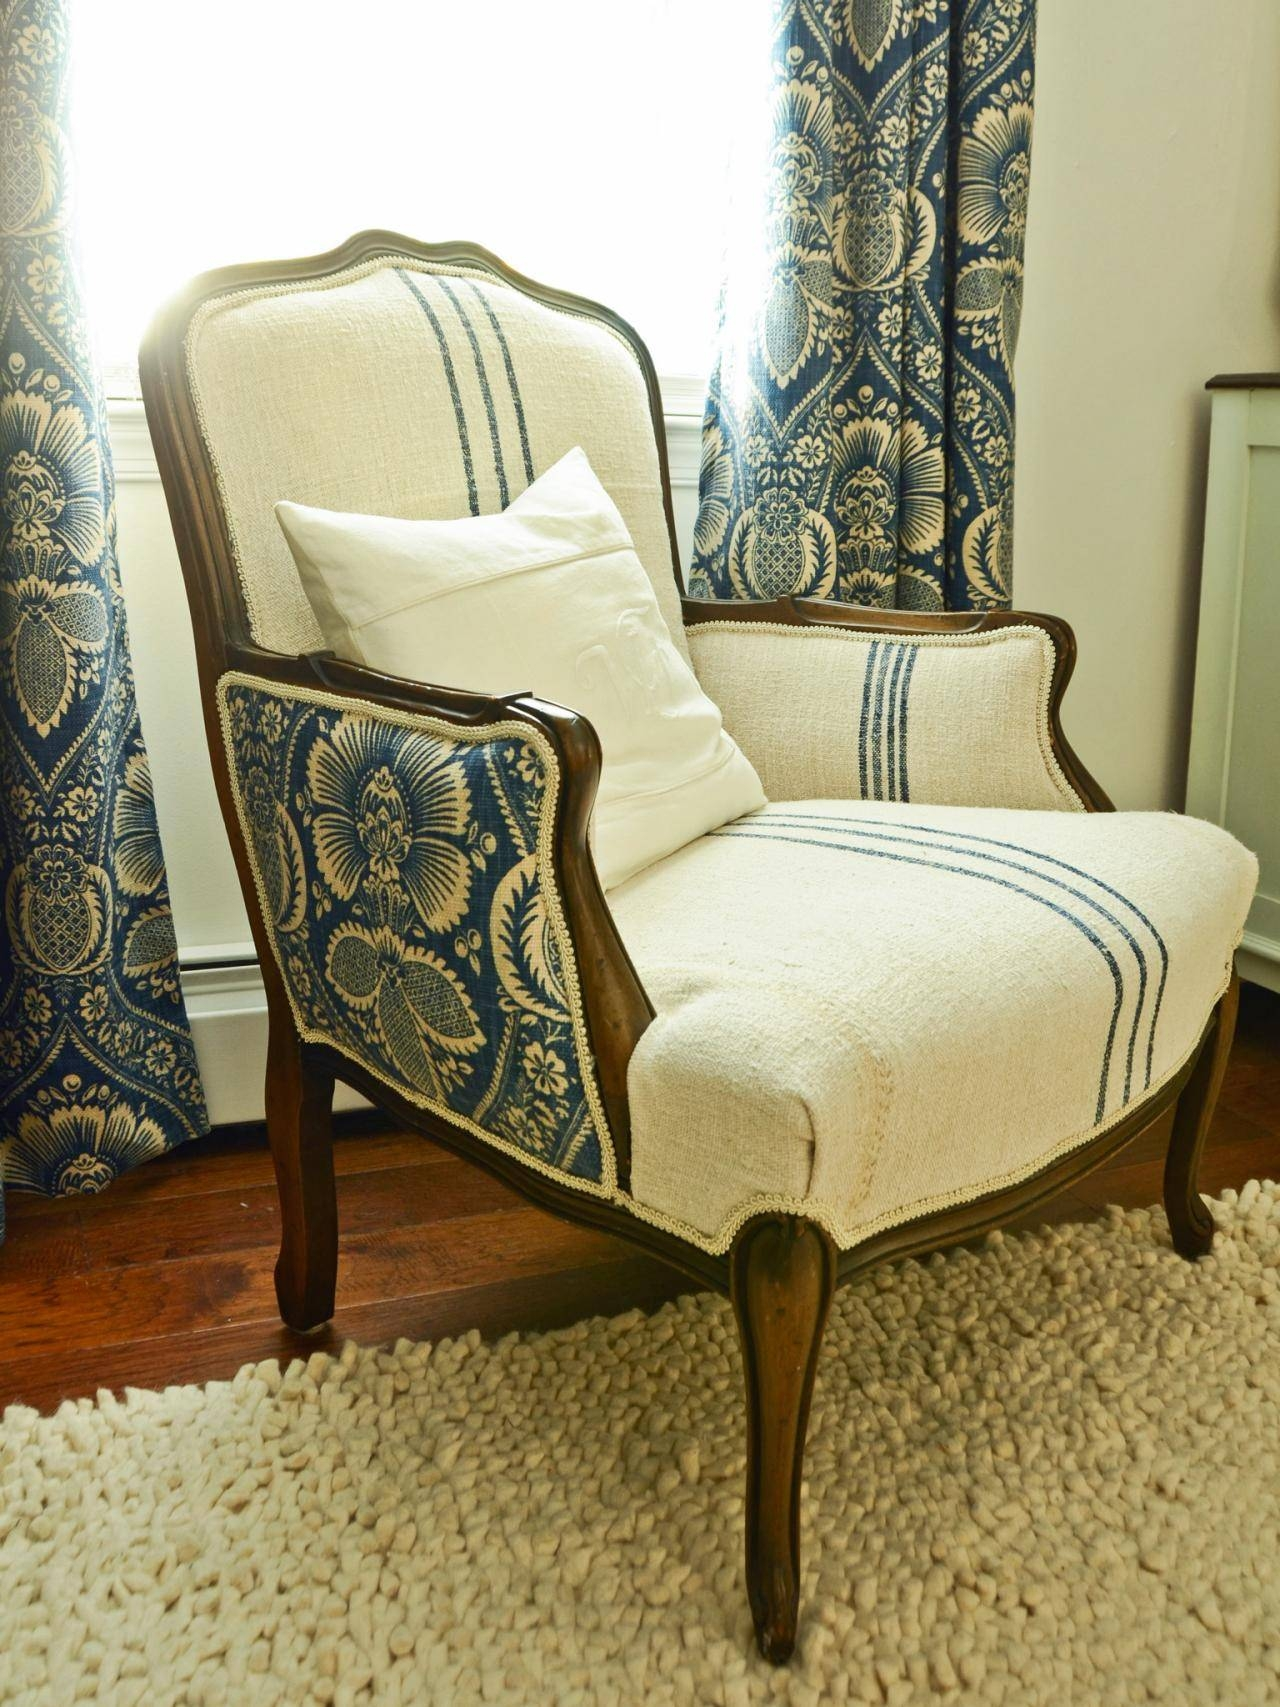 How To Re-Cover A Dining Room Chair | Hgtv intended for Reupholster Sofas Cushions (Image 8 of 15)